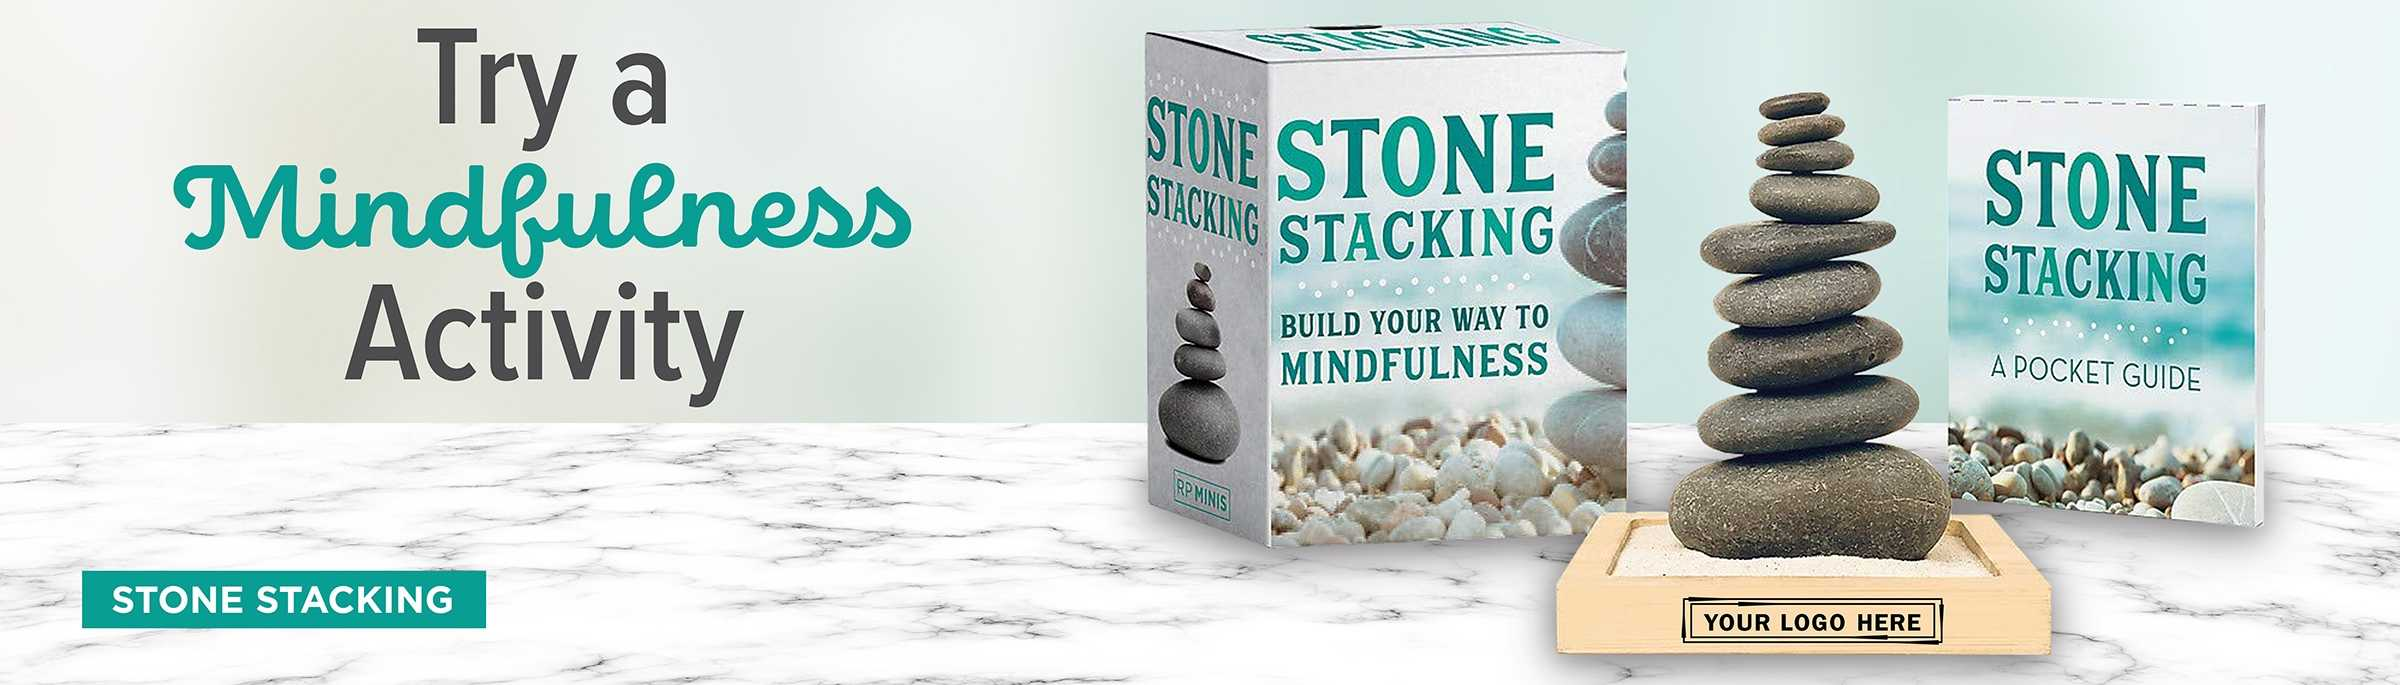 Stone Stacking AIM